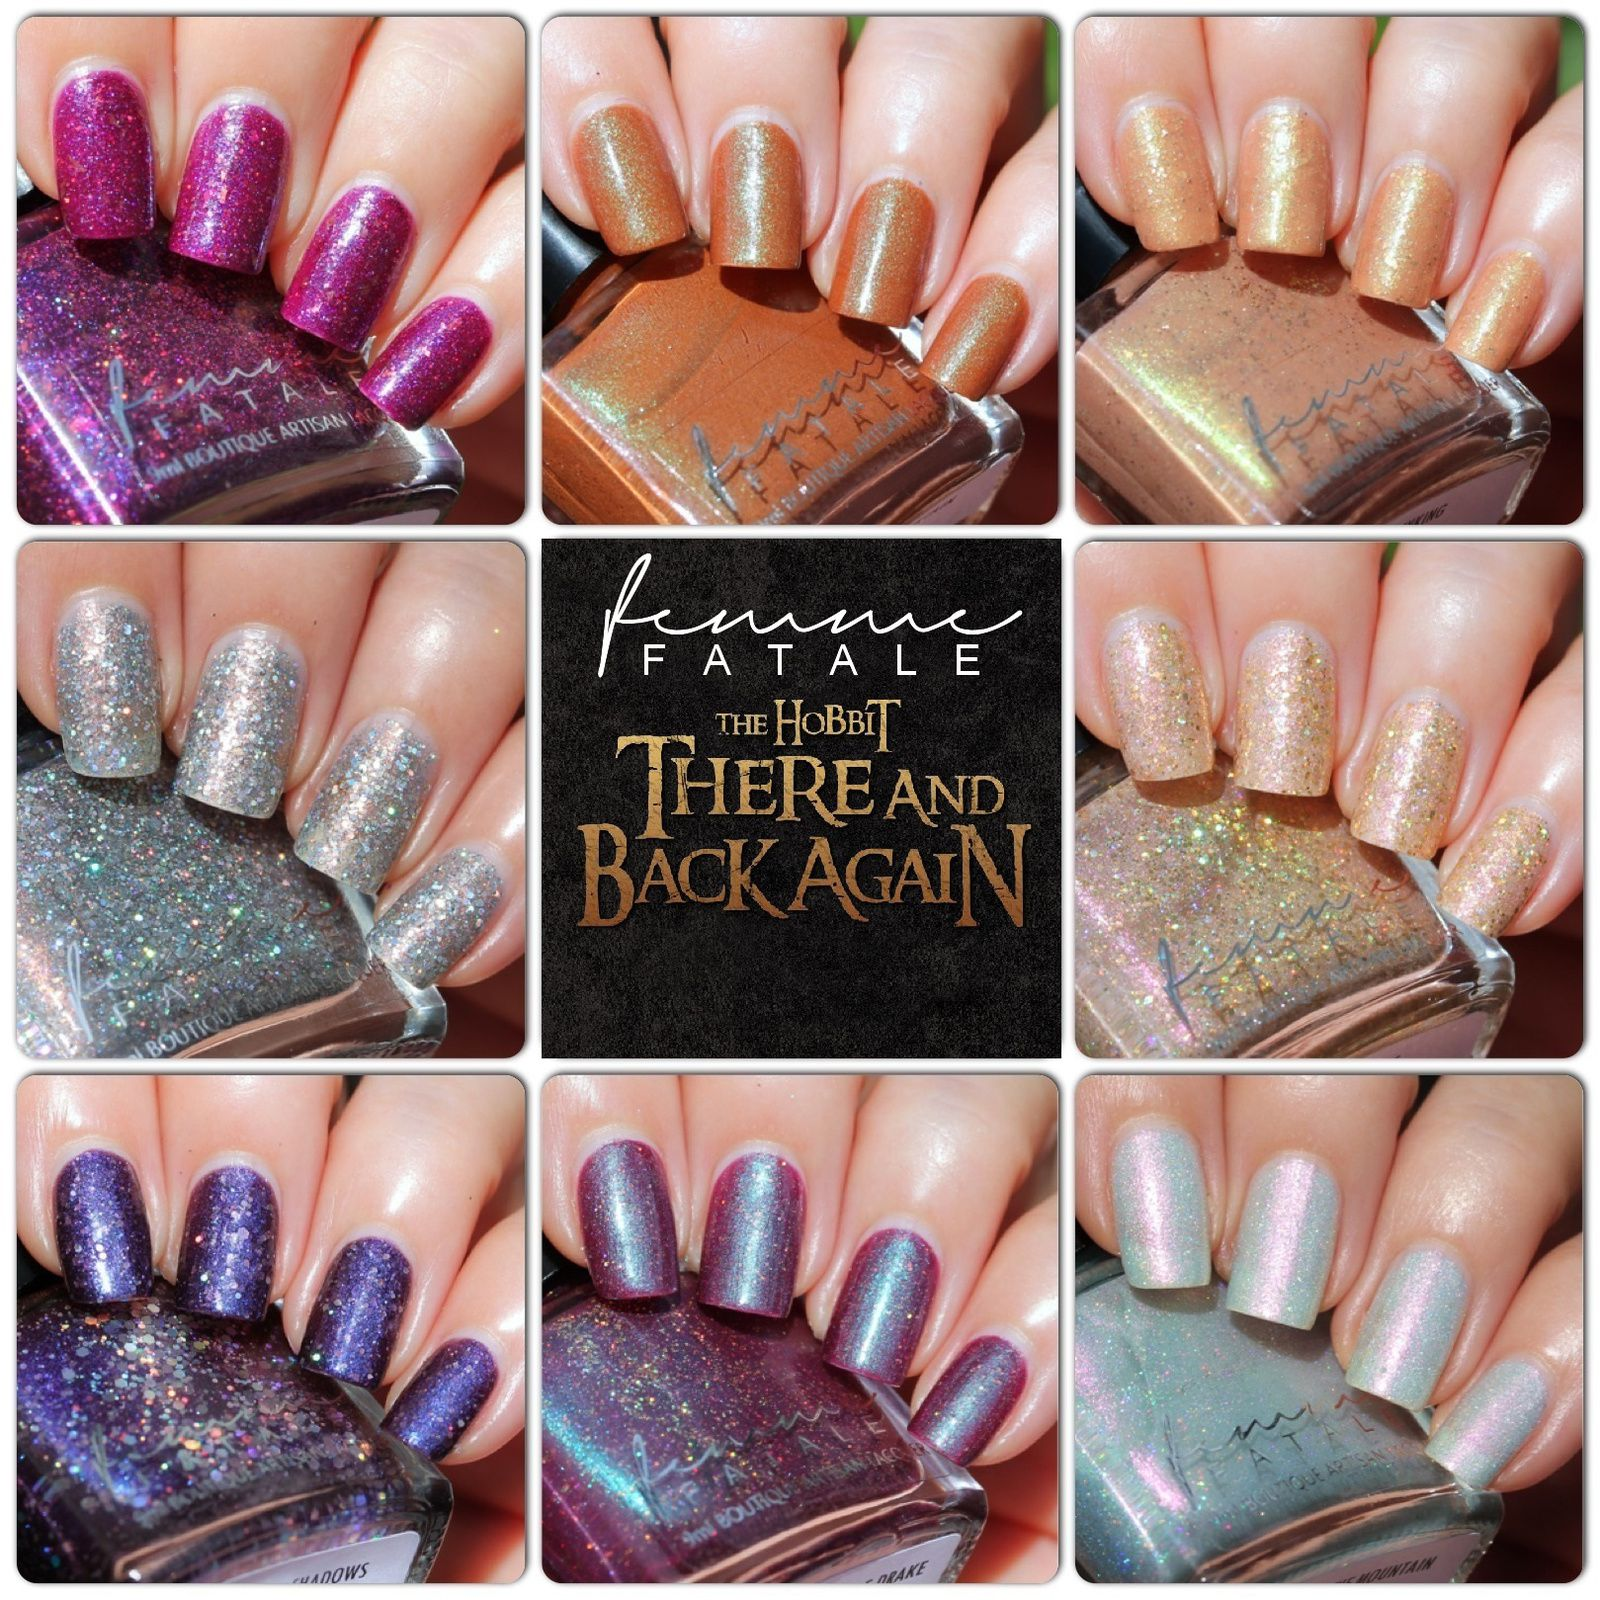 (These nail polish were sent for review by Femme Fatale Cosmetics)